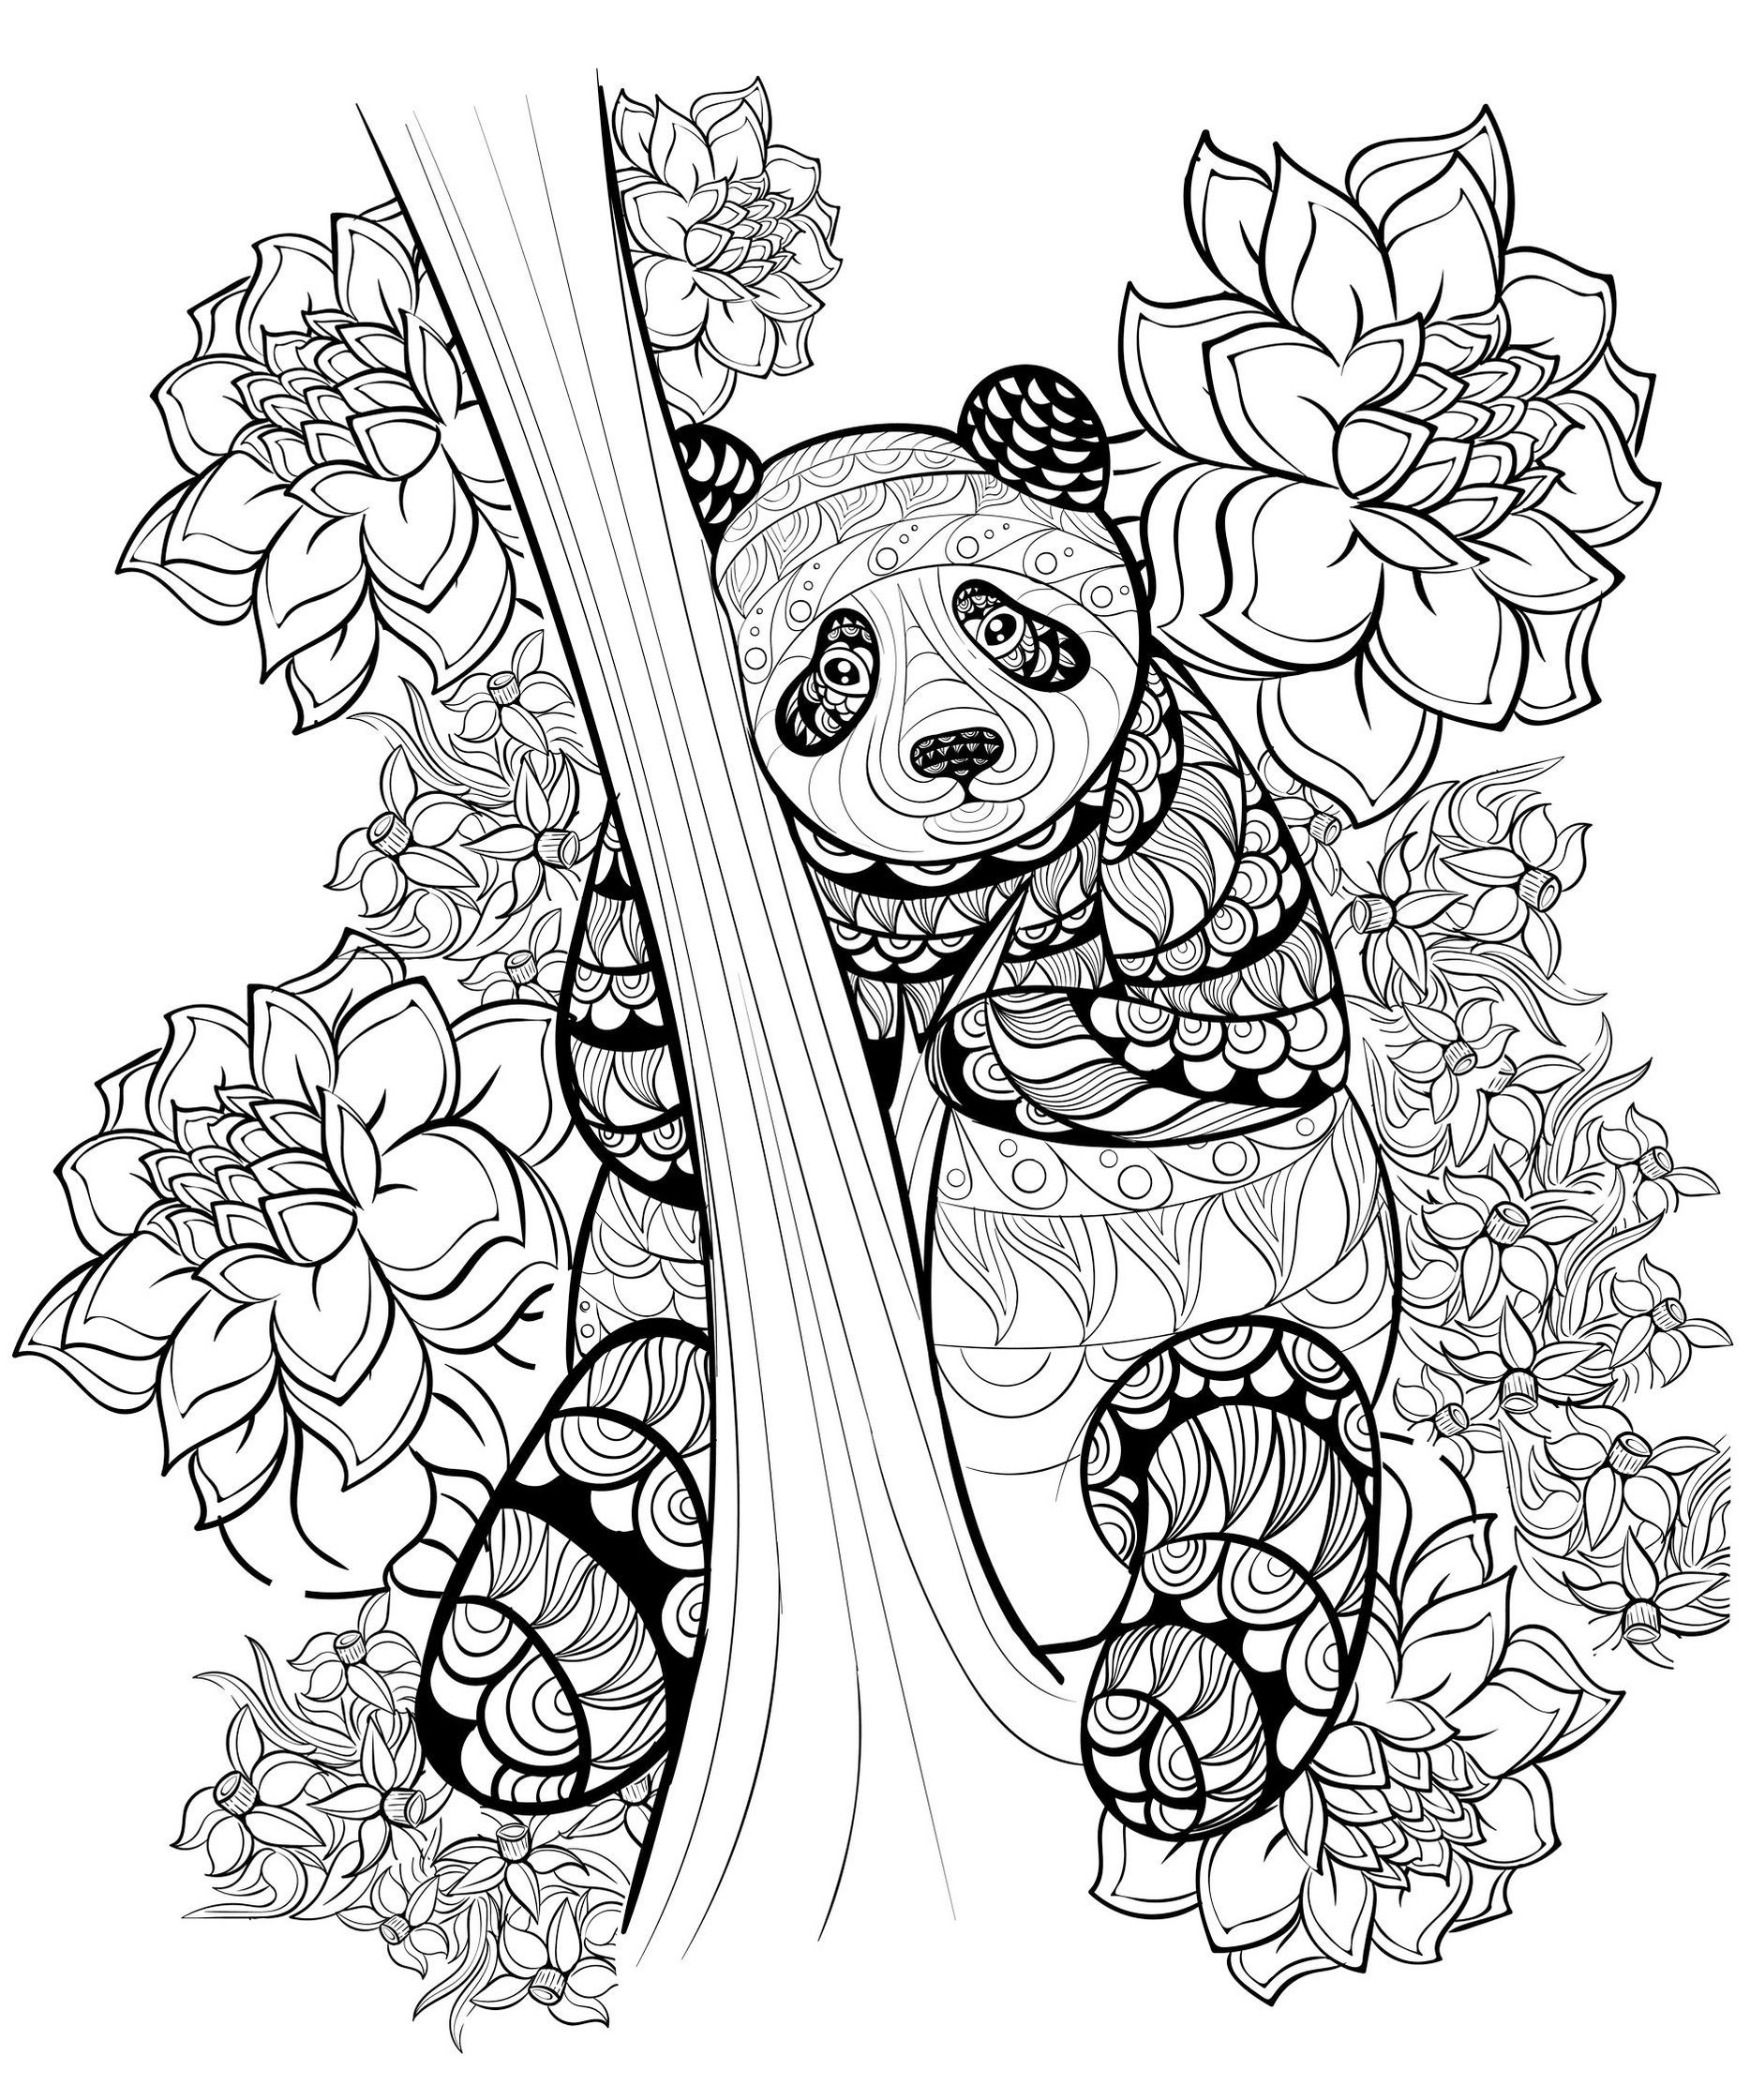 Zentangle Panda Coloring Sheet Printable Panda Coloring Pages